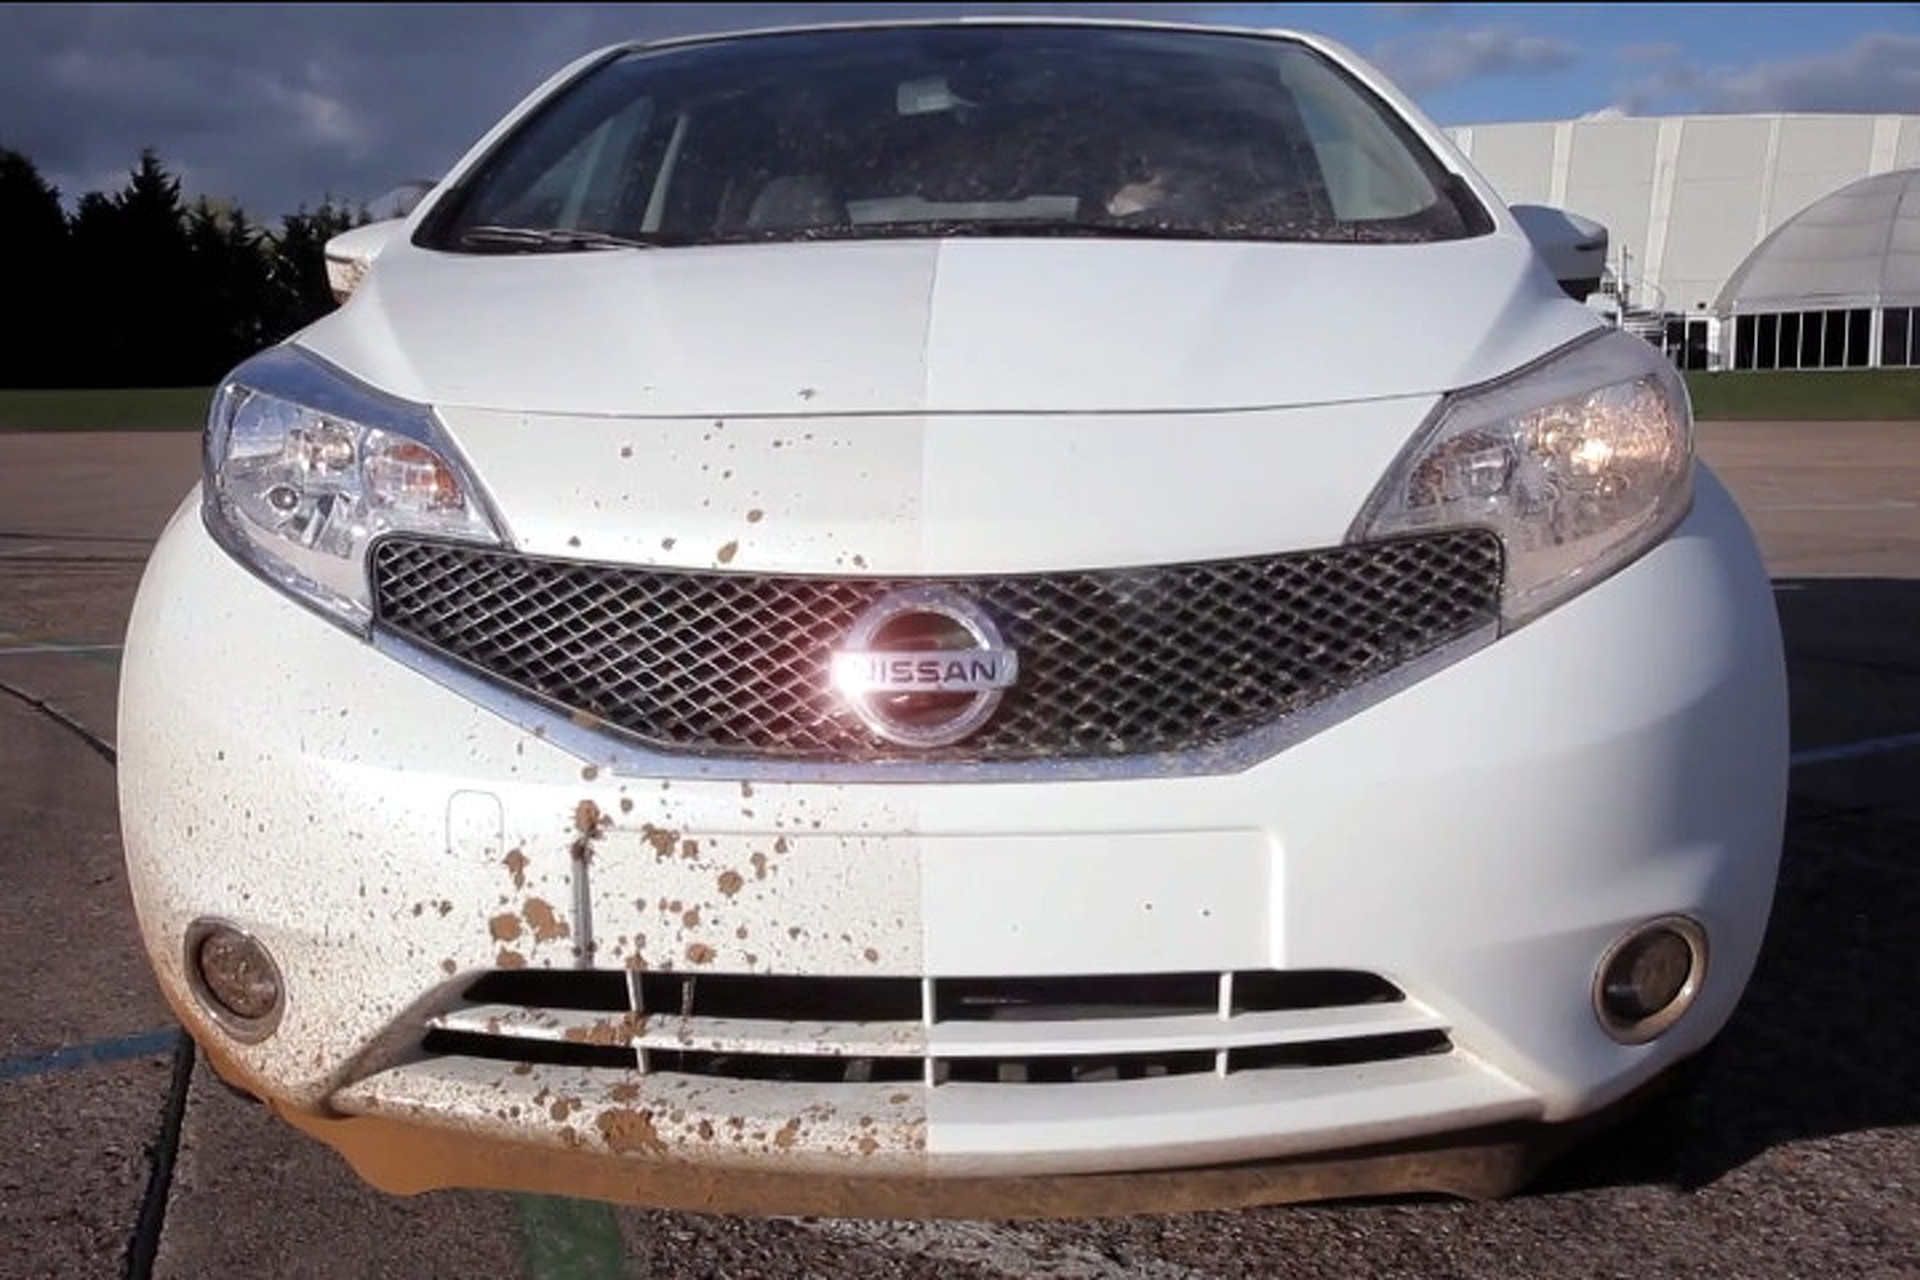 Nissan May Have Created First-Ever Self-Cleaning Car